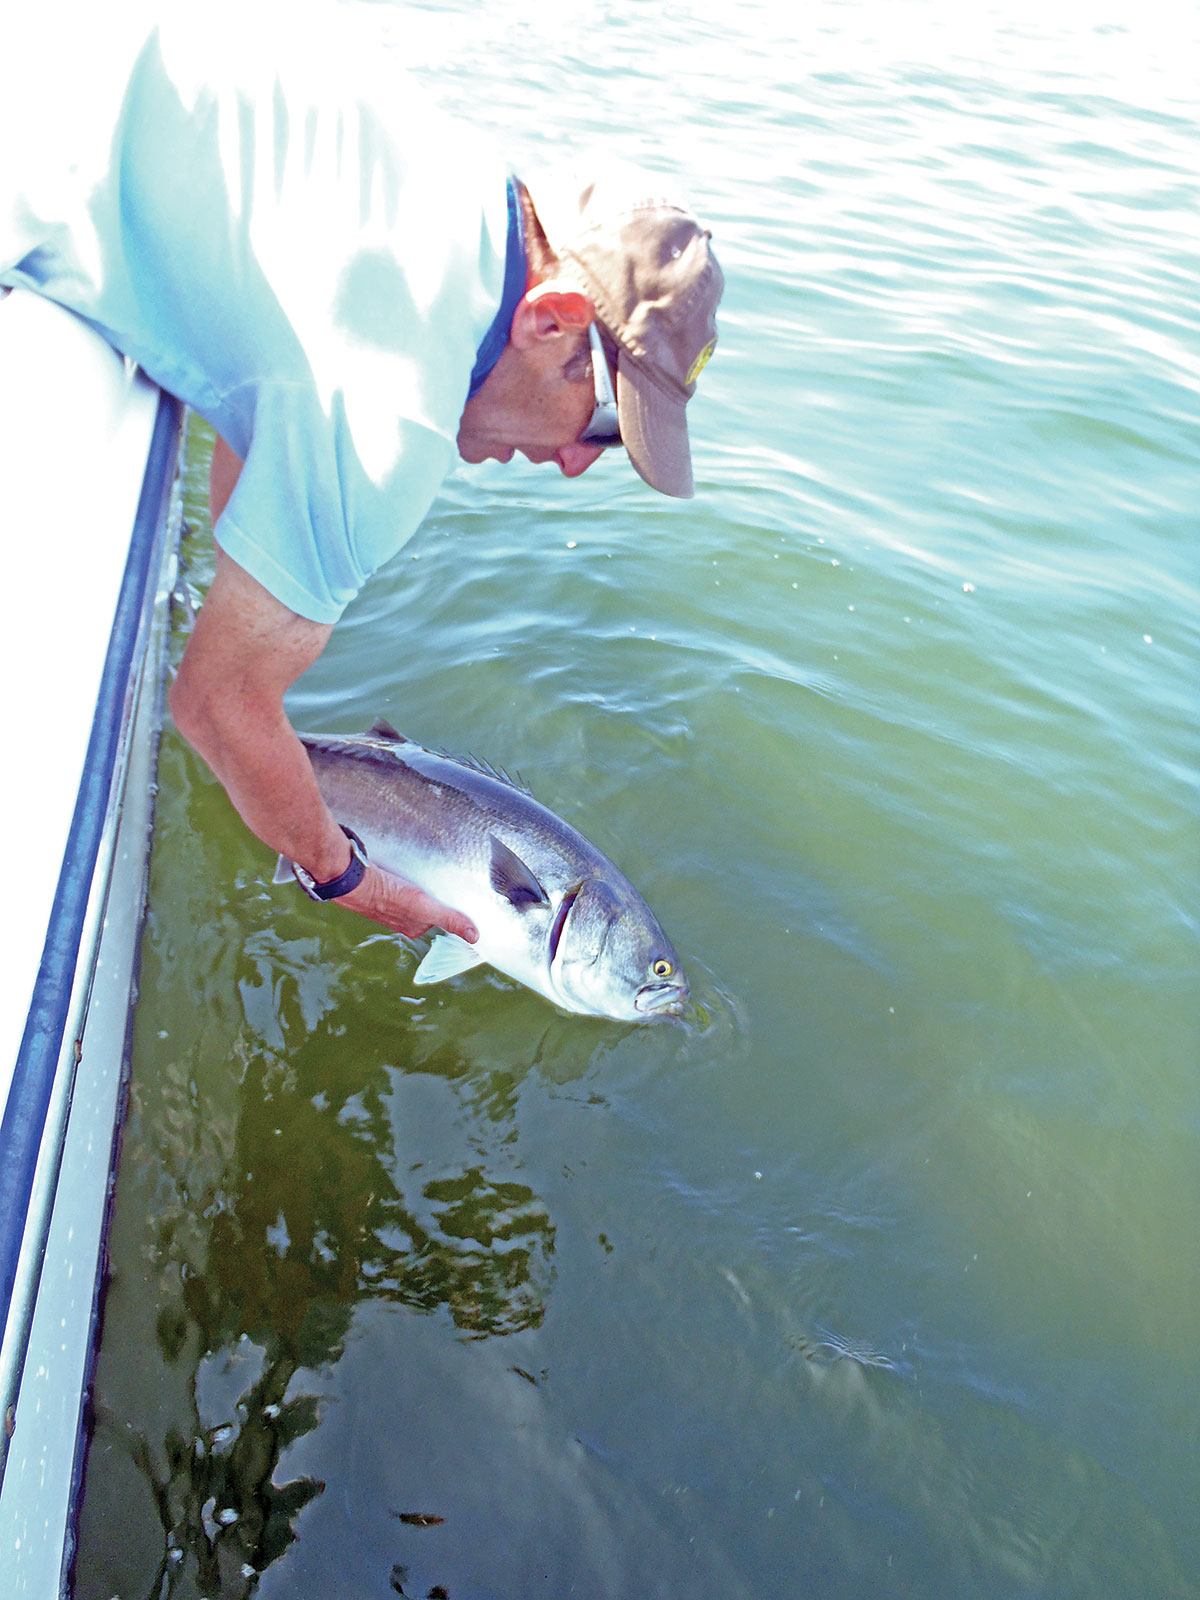 In warm water, bluefish need more time to be revived.